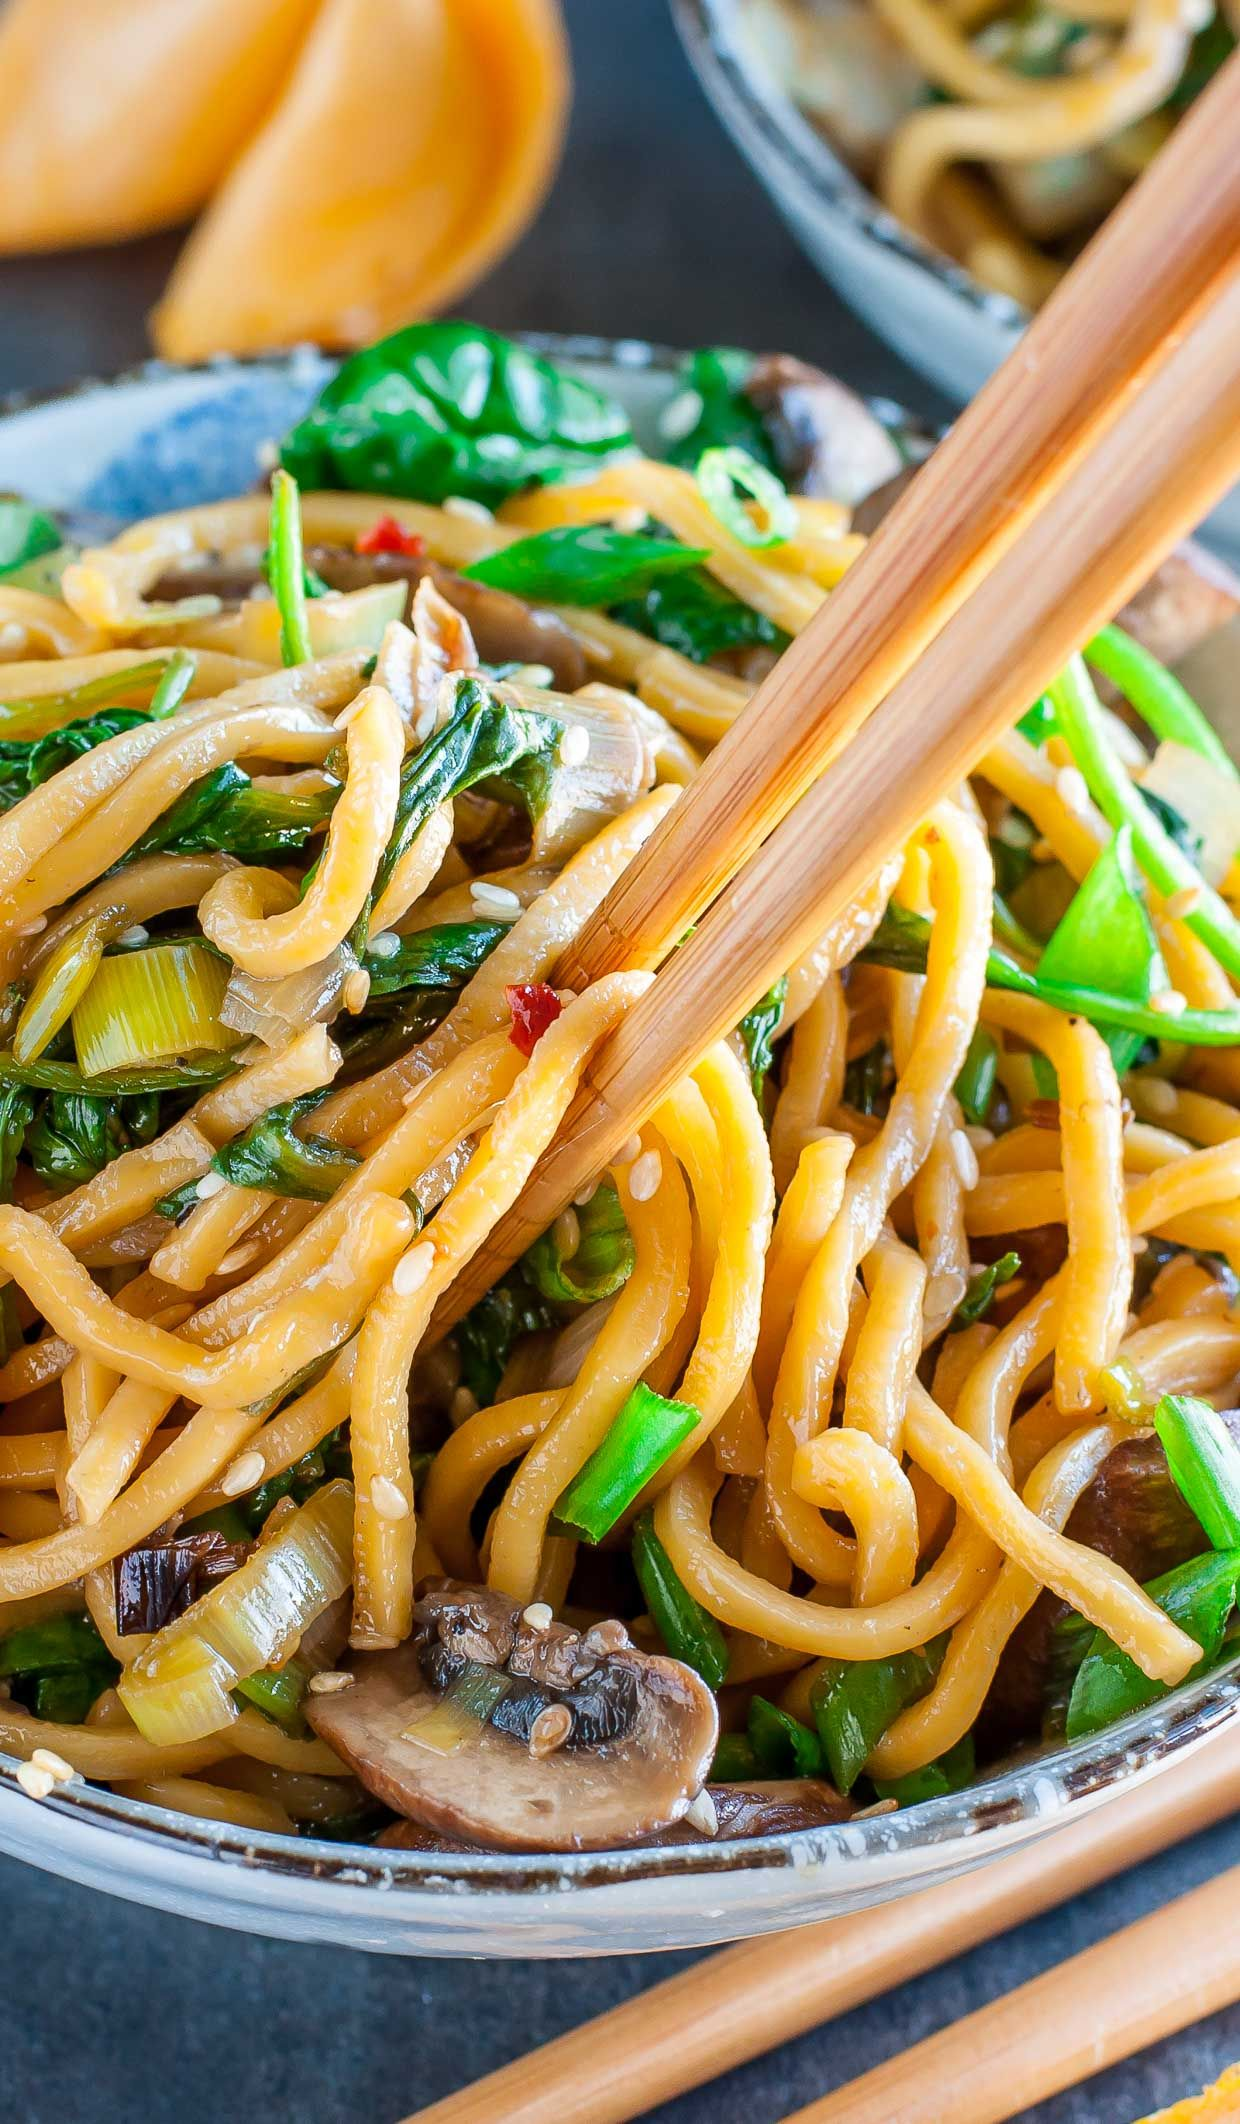 Vegan Noodle Bowls With Spinach And Mushrooms Peas And Crayons Recipe Spinach Stuffed Mushrooms Vegan Noodles Stuffed Mushrooms